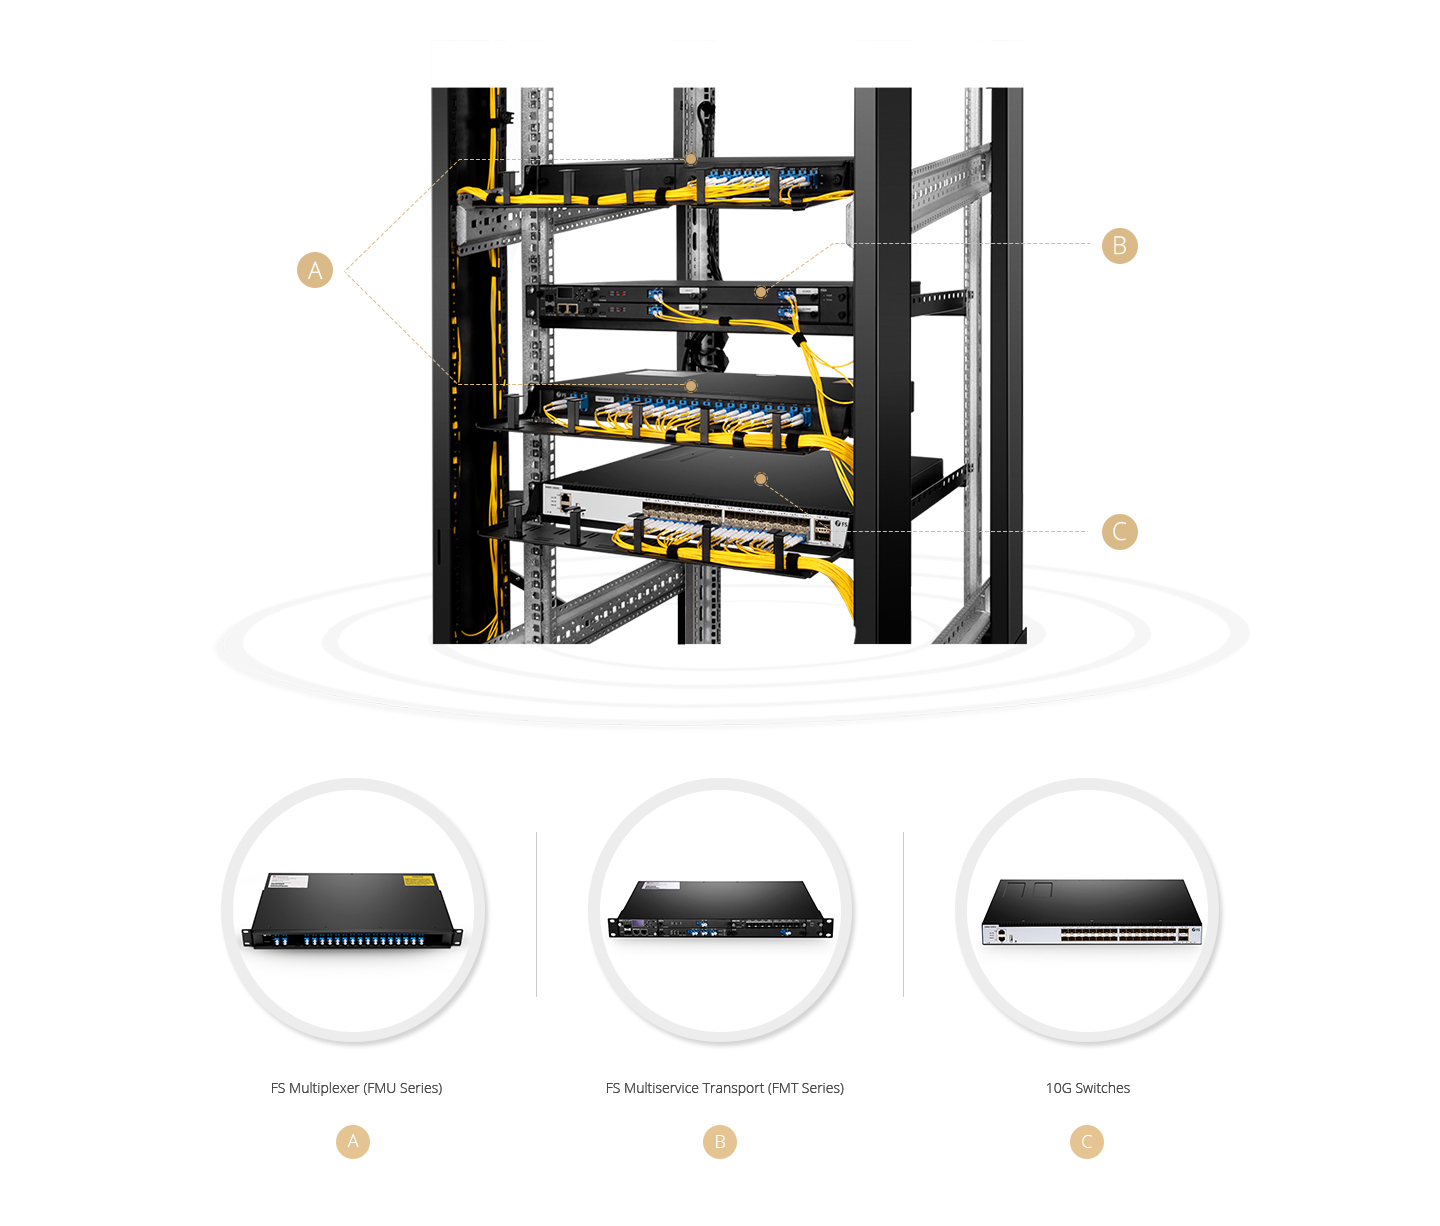 CWDM OADM  Remarkable Concentration and Manageability